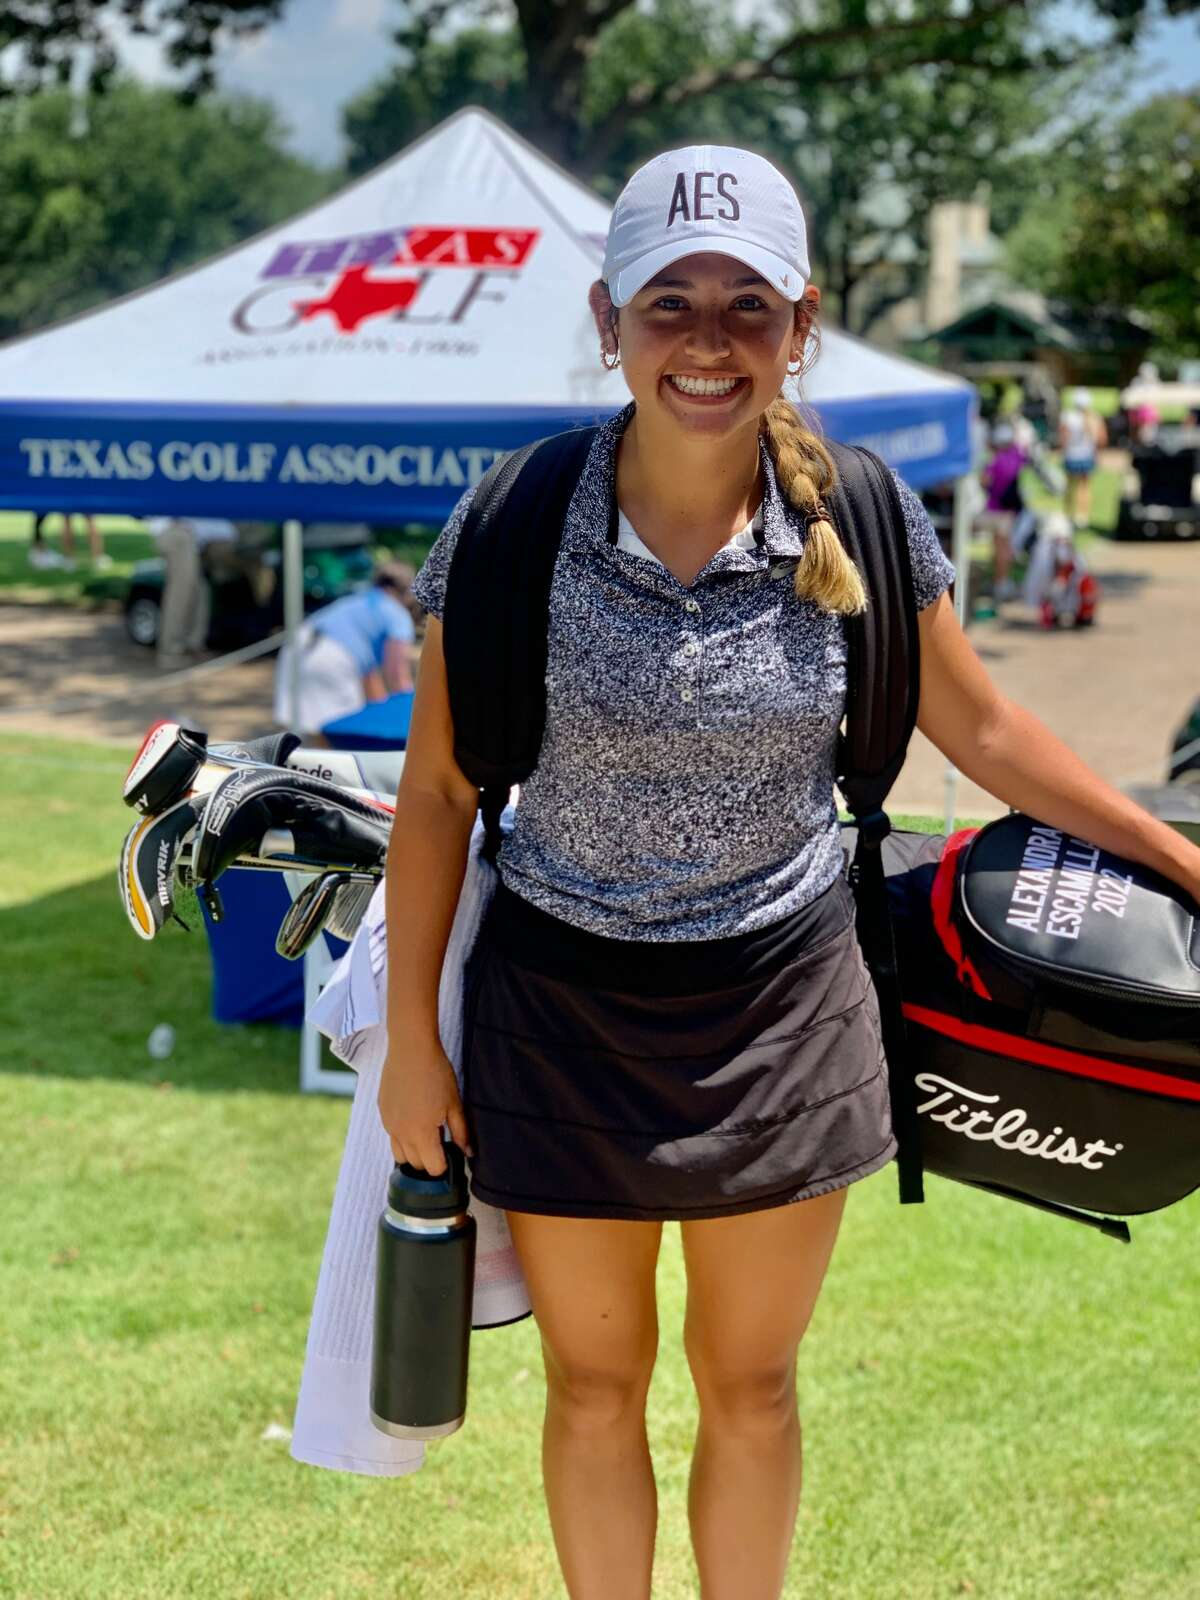 Trinity senior Ali Escamilla pictured at the Texas Golf Association's 100thWomen's Texas Amateur, July 6 at River Crest Country Club in Fort Worth.